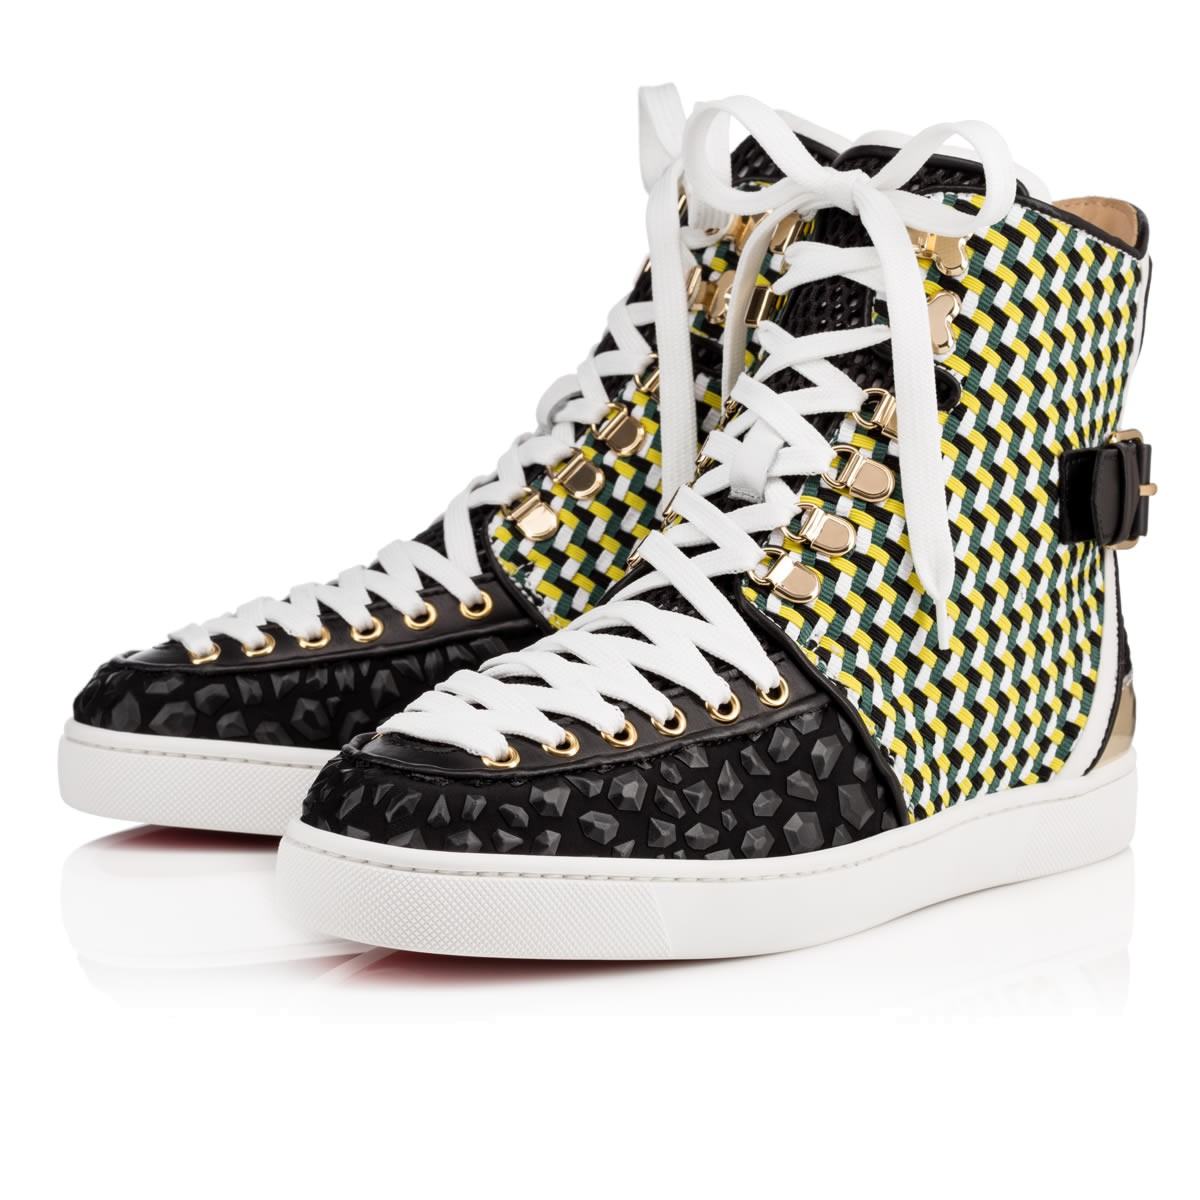 replica shoes for men - christian louboutin Rando high-top sneakers | The Filipino ...